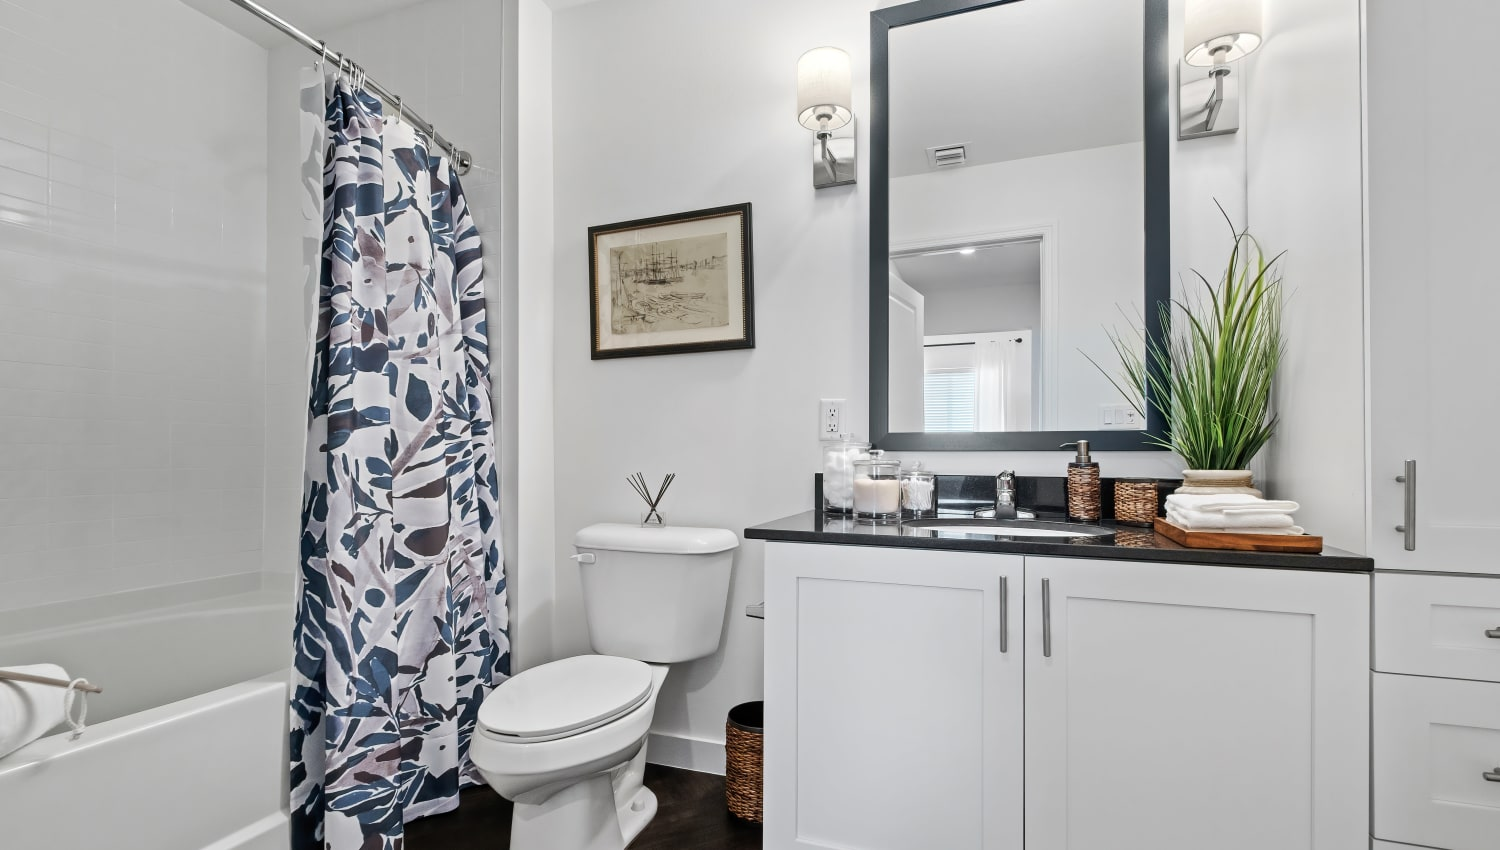 Model bathroom with white European style cabinets and tub/shower combination at Town Lantana in Lantana, Florida